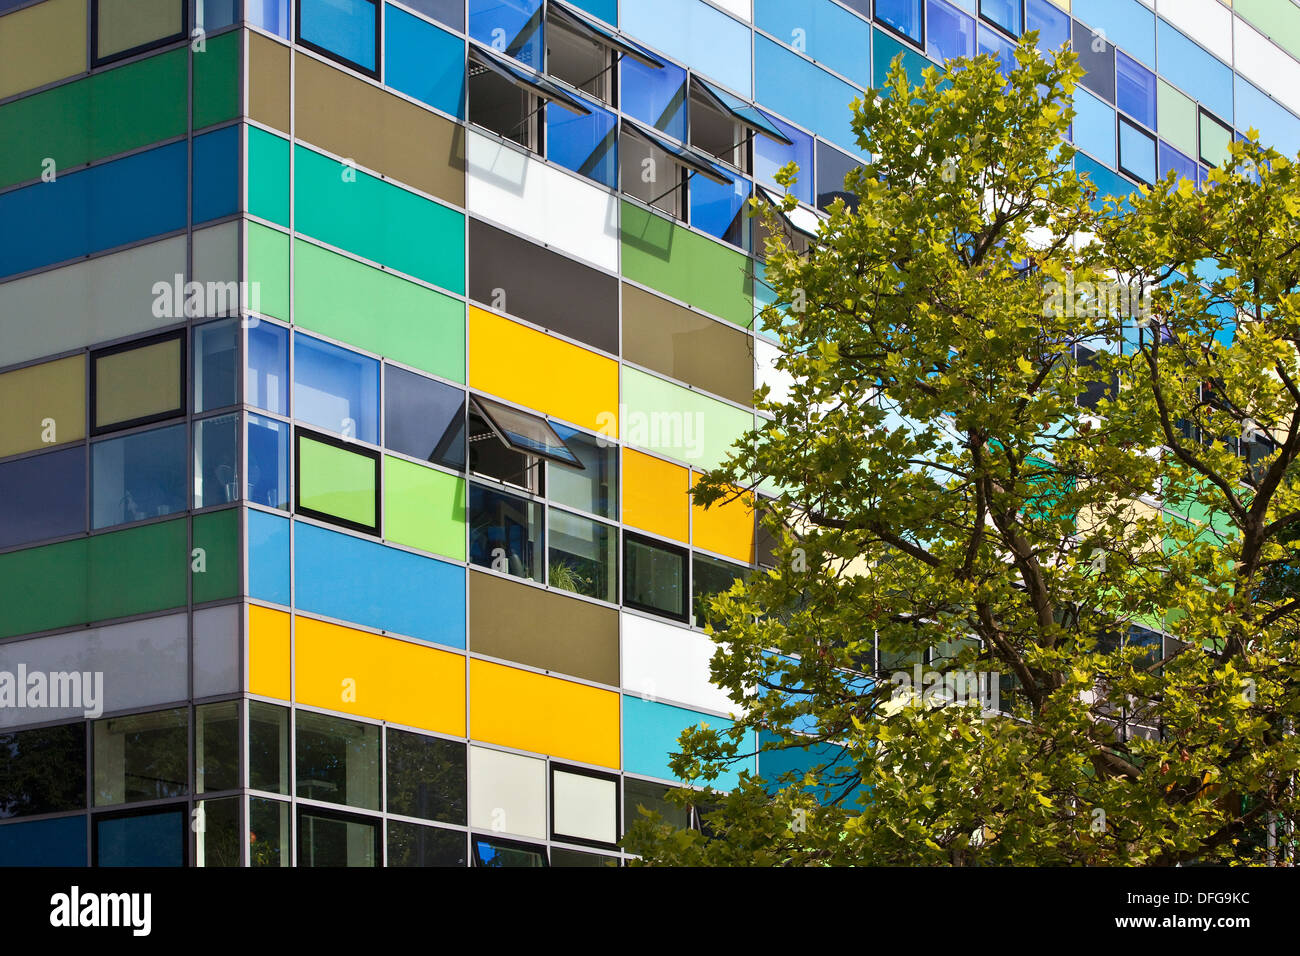 BioMedizinZentrum Bochum, BMZ or BioMedicine Centre, Bochum, Ruhr district, North Rhine-Westphalia, Germany - Stock Image